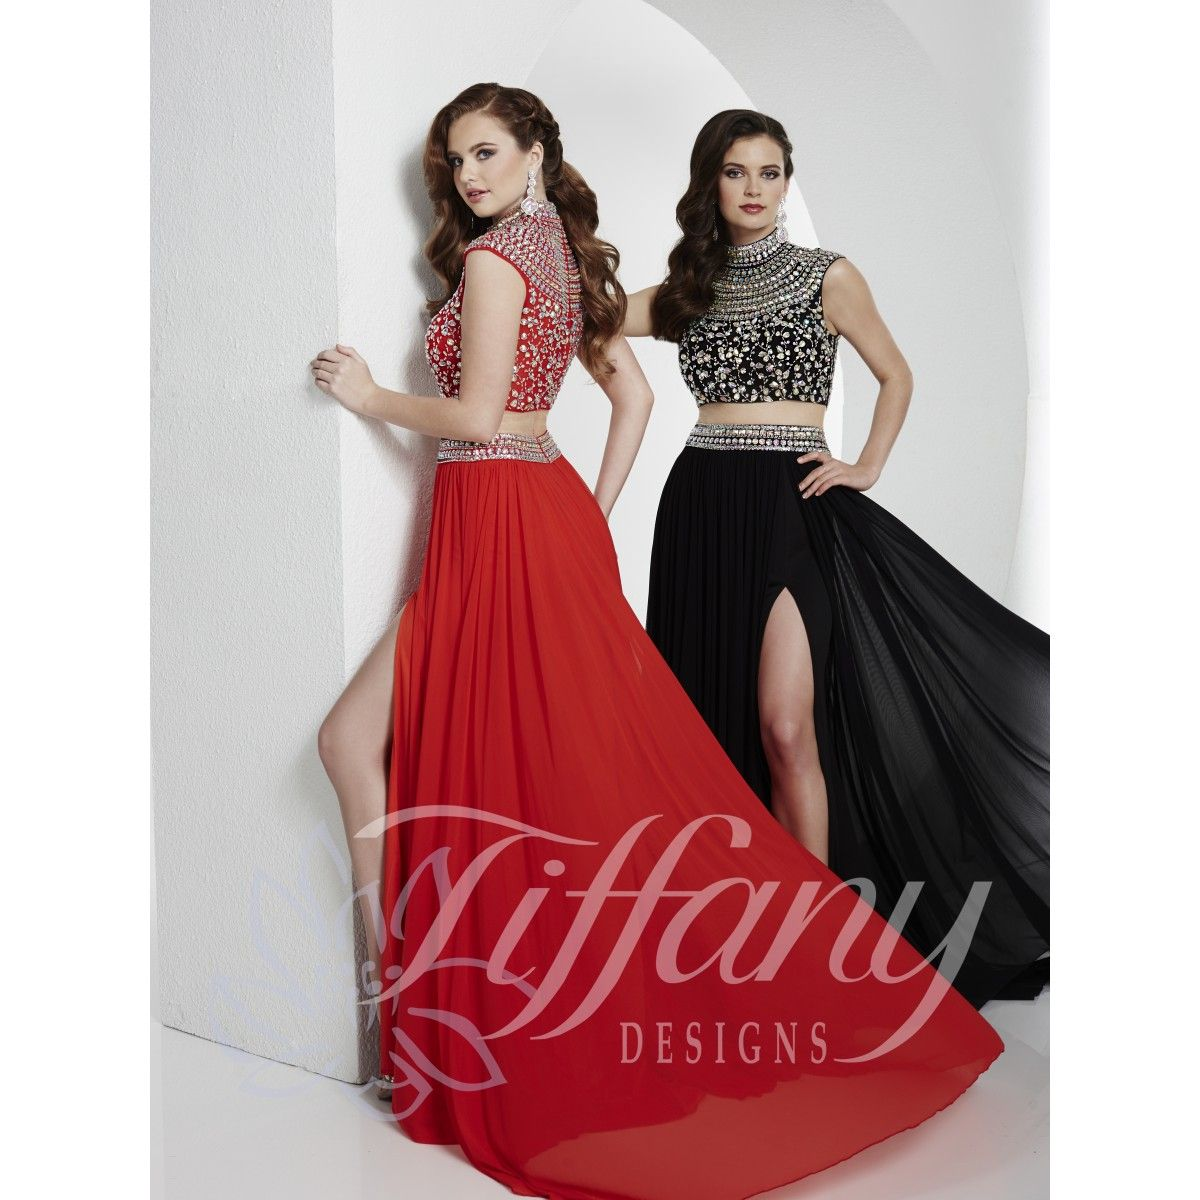 Tiffanydesigns in fabulous fashion and sleek style this detached